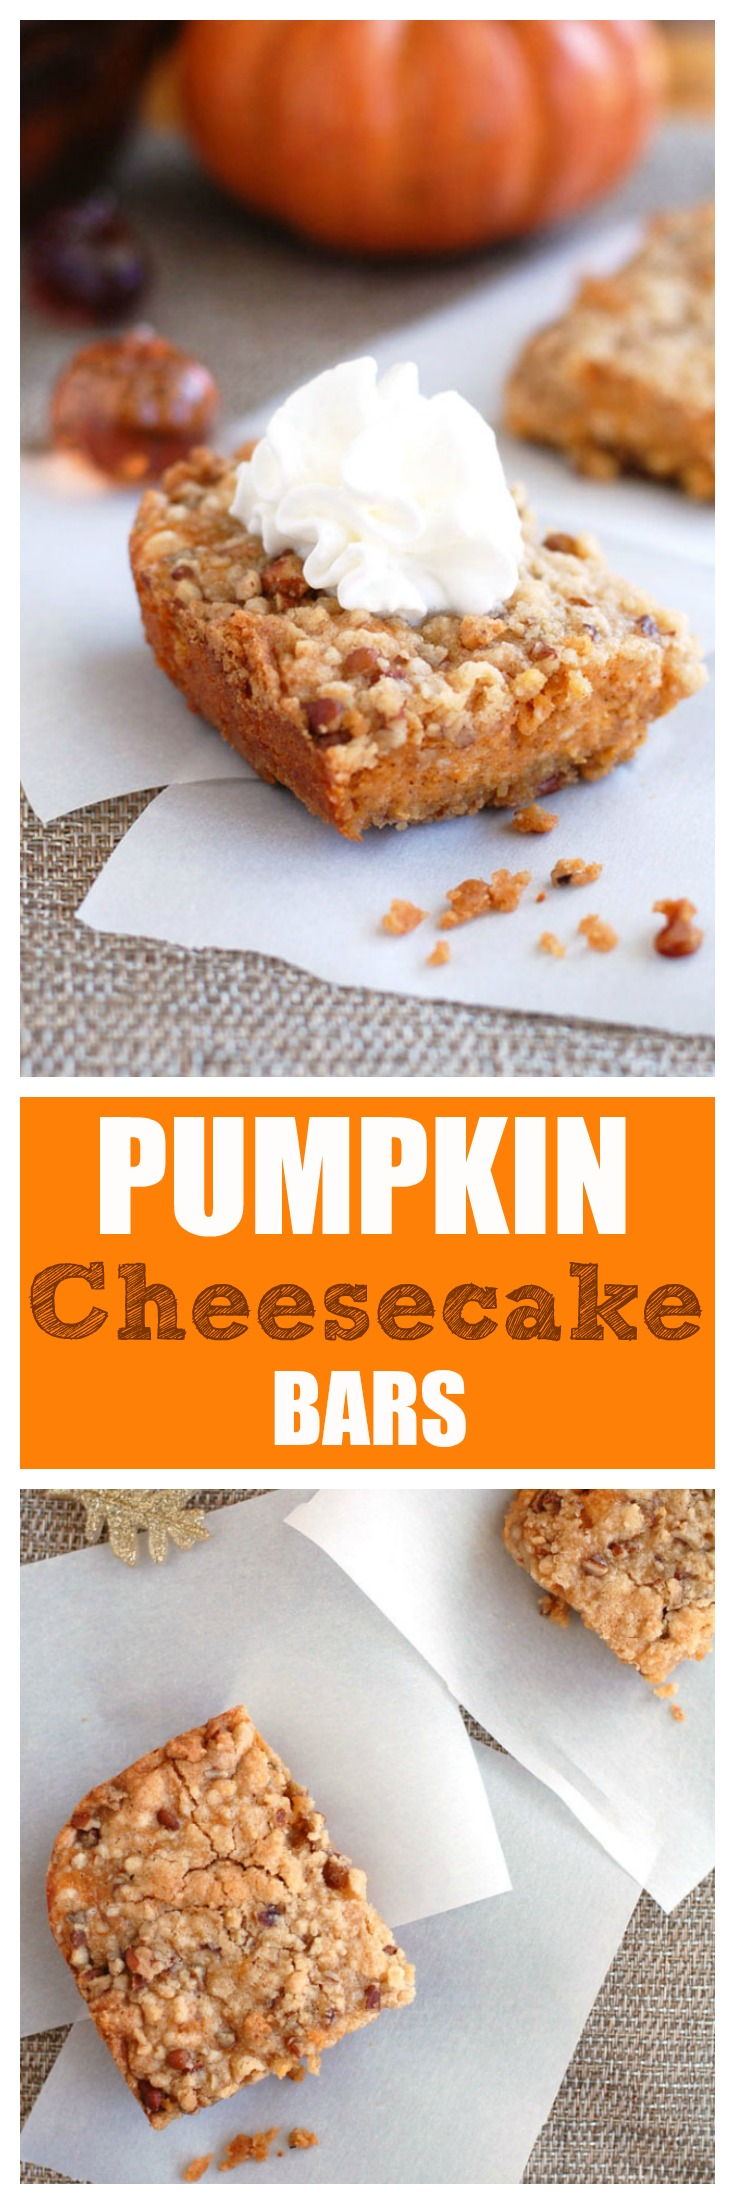 The Best Pumpkin Cheesecake bars are a great combination of a delicious crust topped with a rich and creamy pumpkin cheesecake and topped with a crumb topping. #pumpkin #pumpkincheesecake #falldesserts